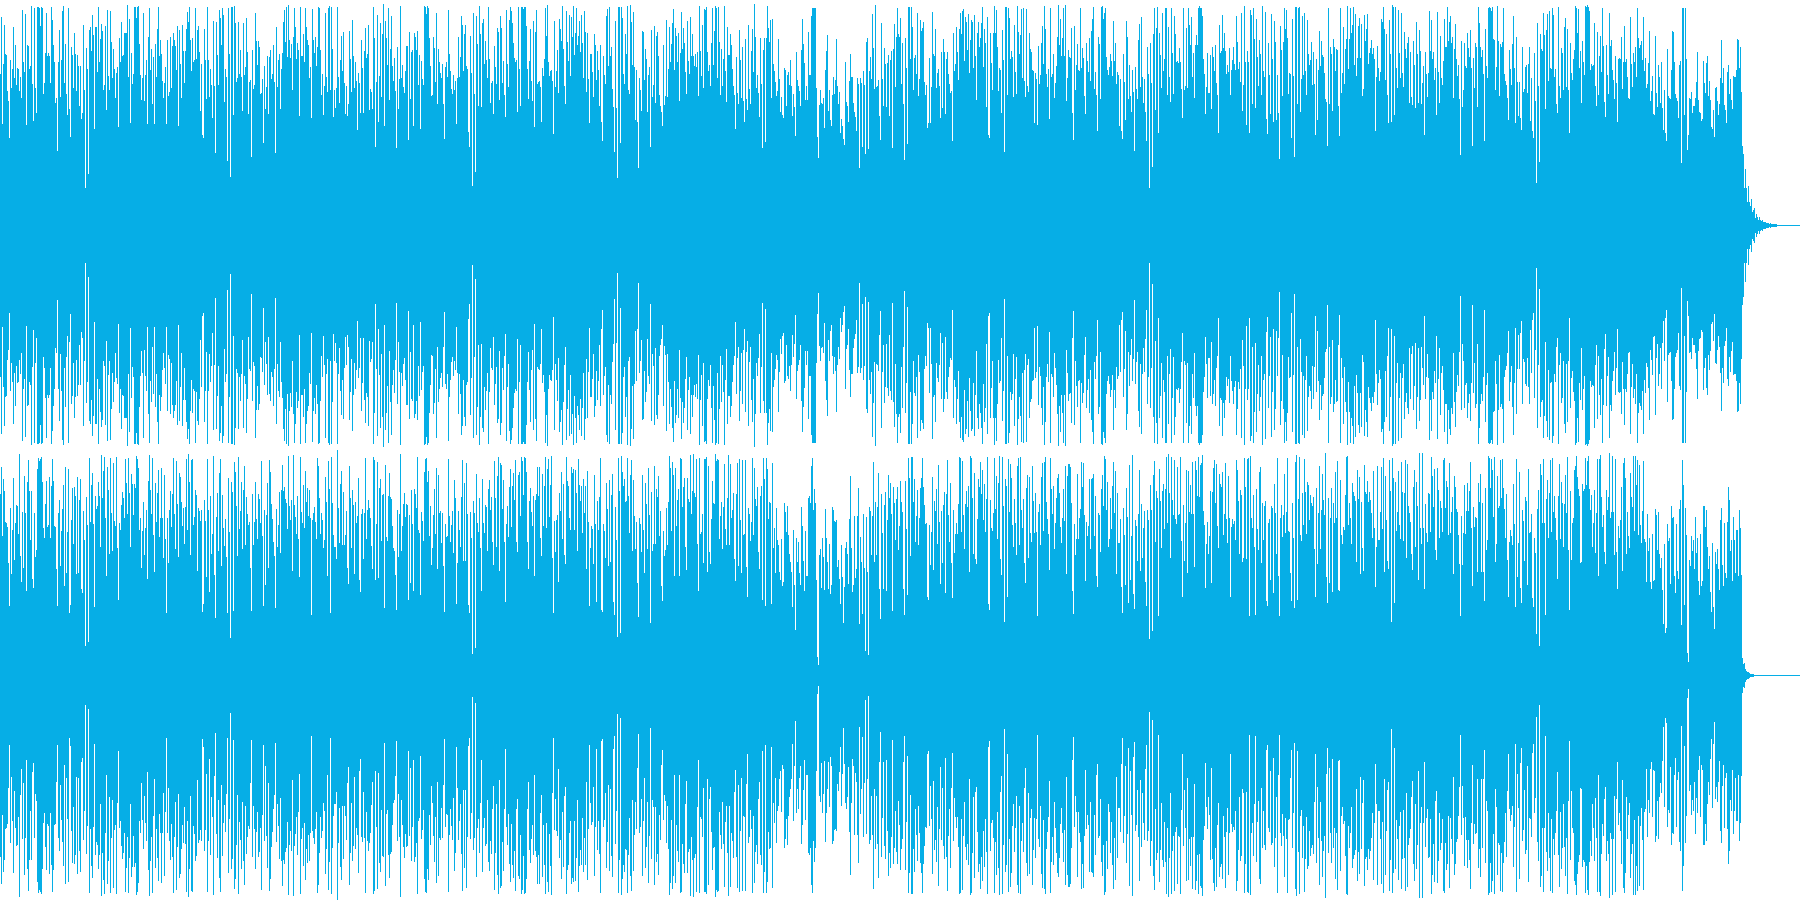 Gentle, warm and refreshing everyday atmosphere's reproduced waveform